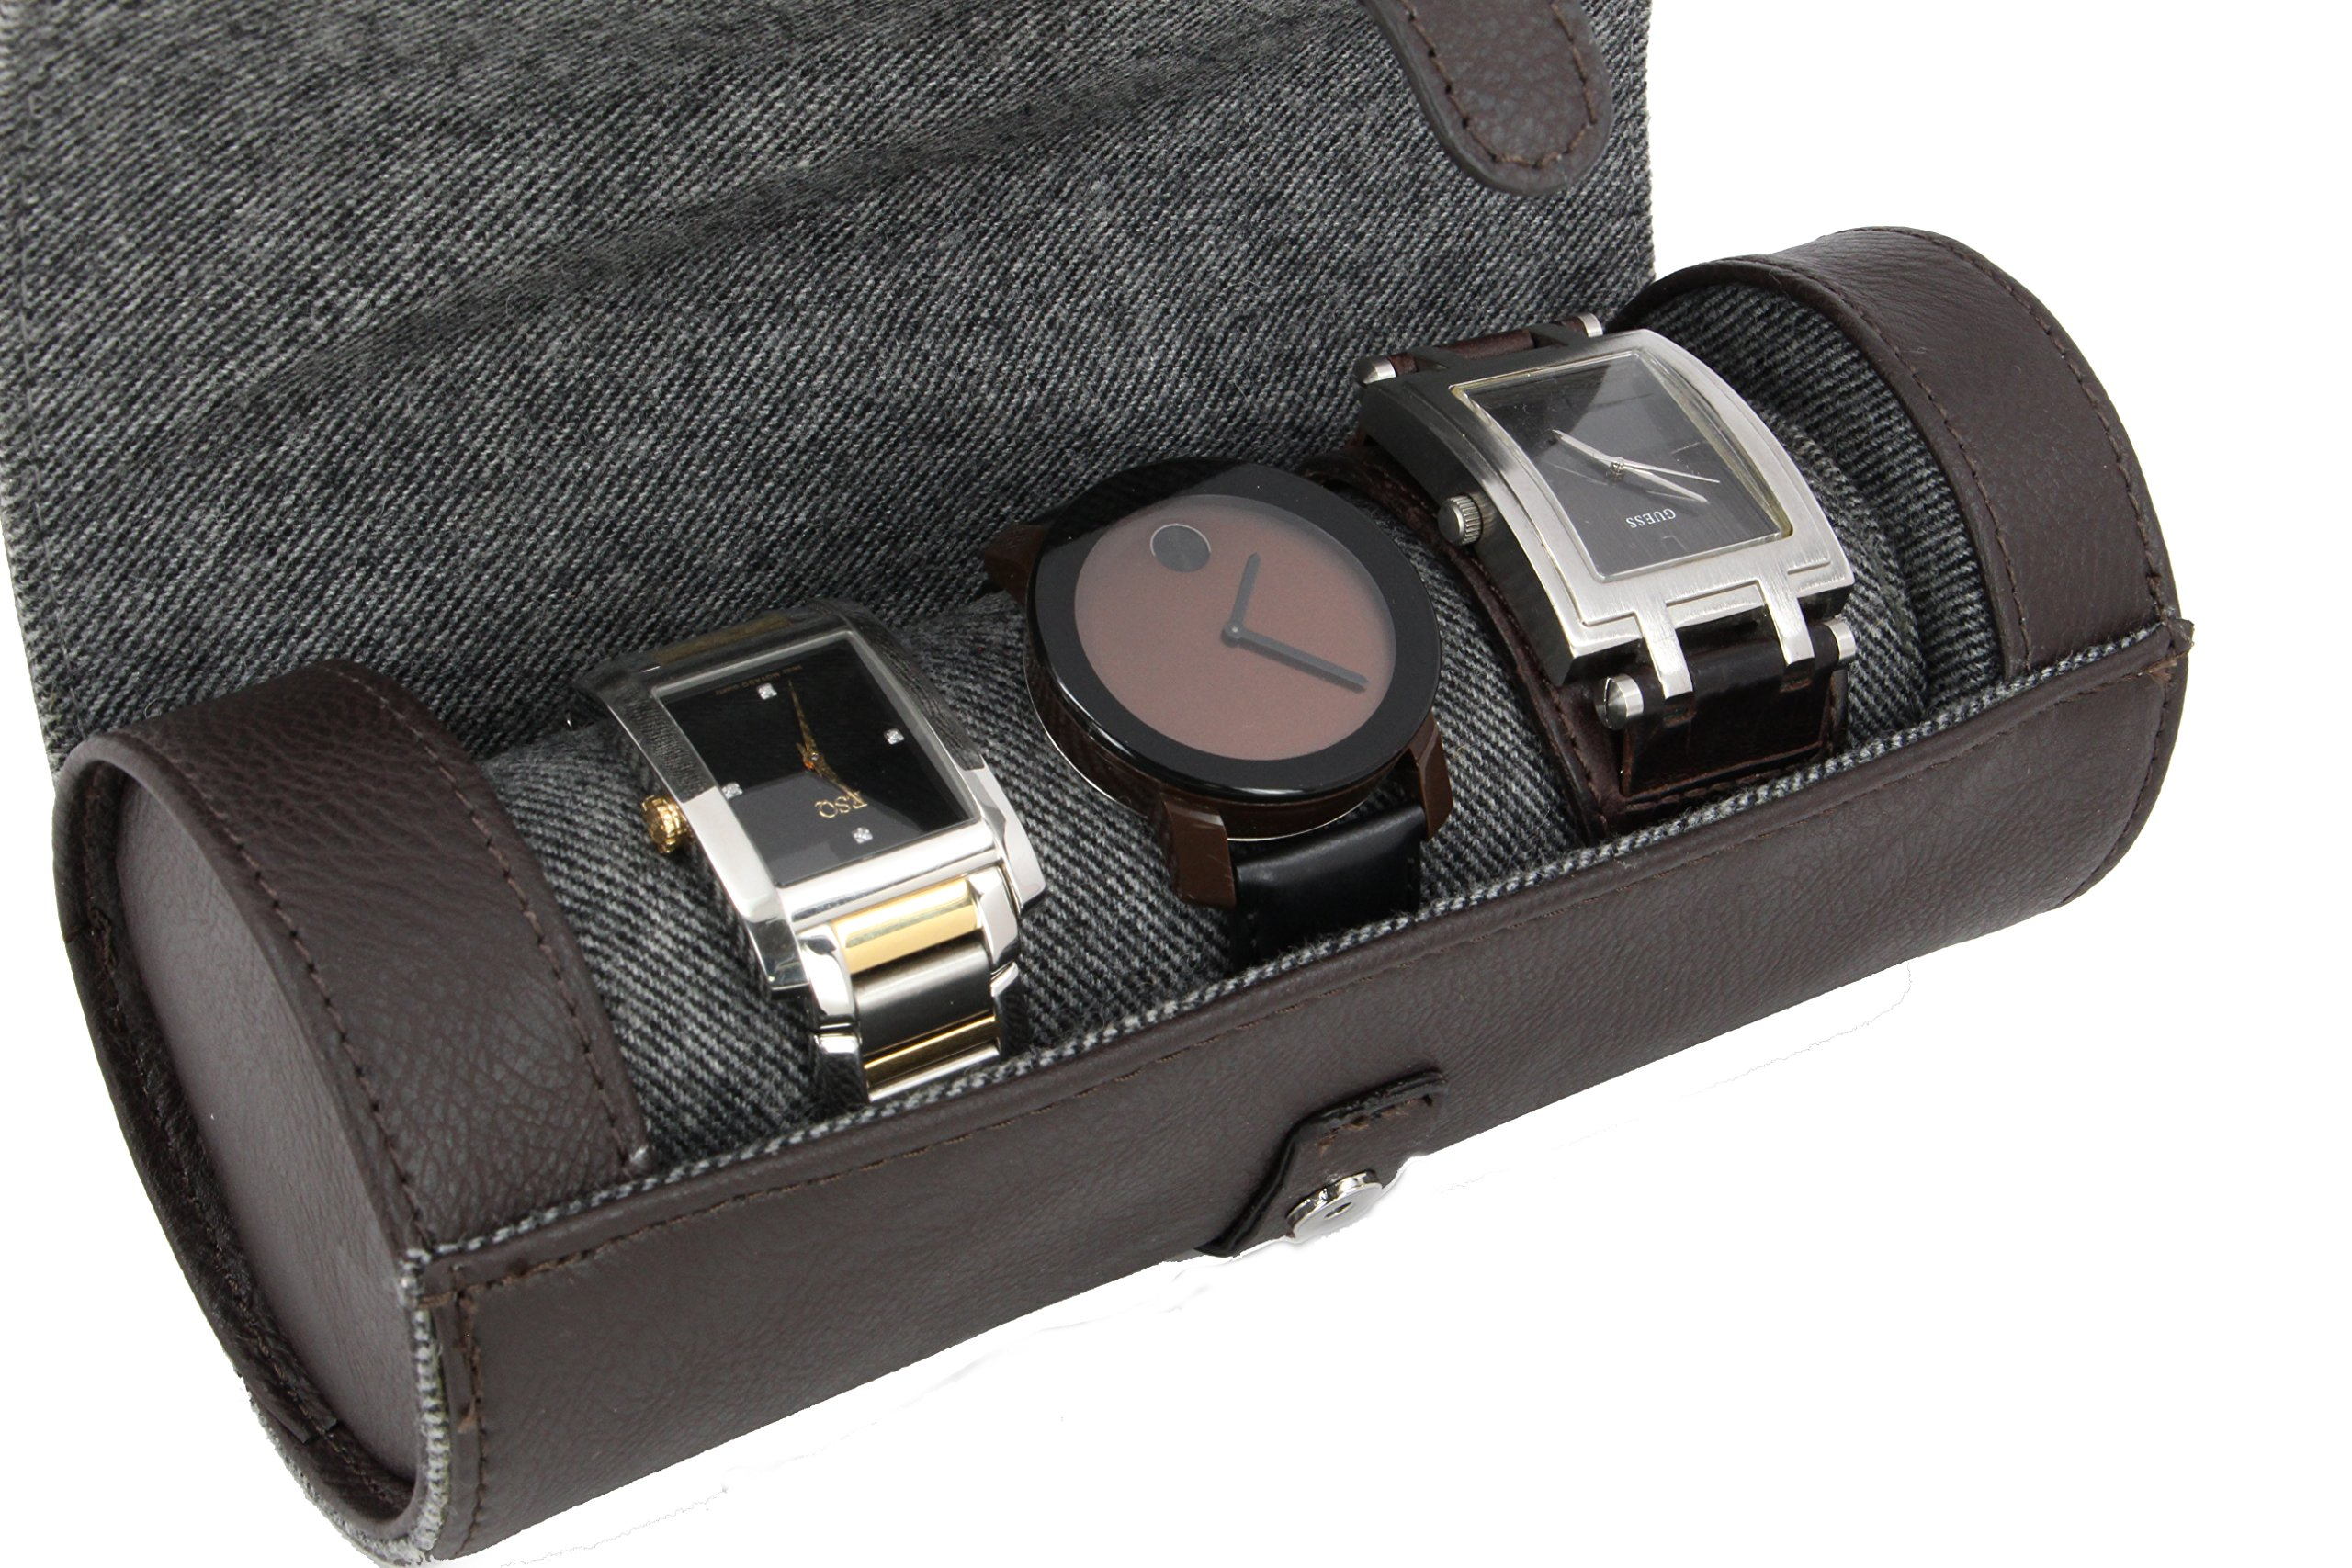 Executive High class Men's Watches and Bracelets Jewelry Box Gift (Buff) by decore Bay (Image #5)